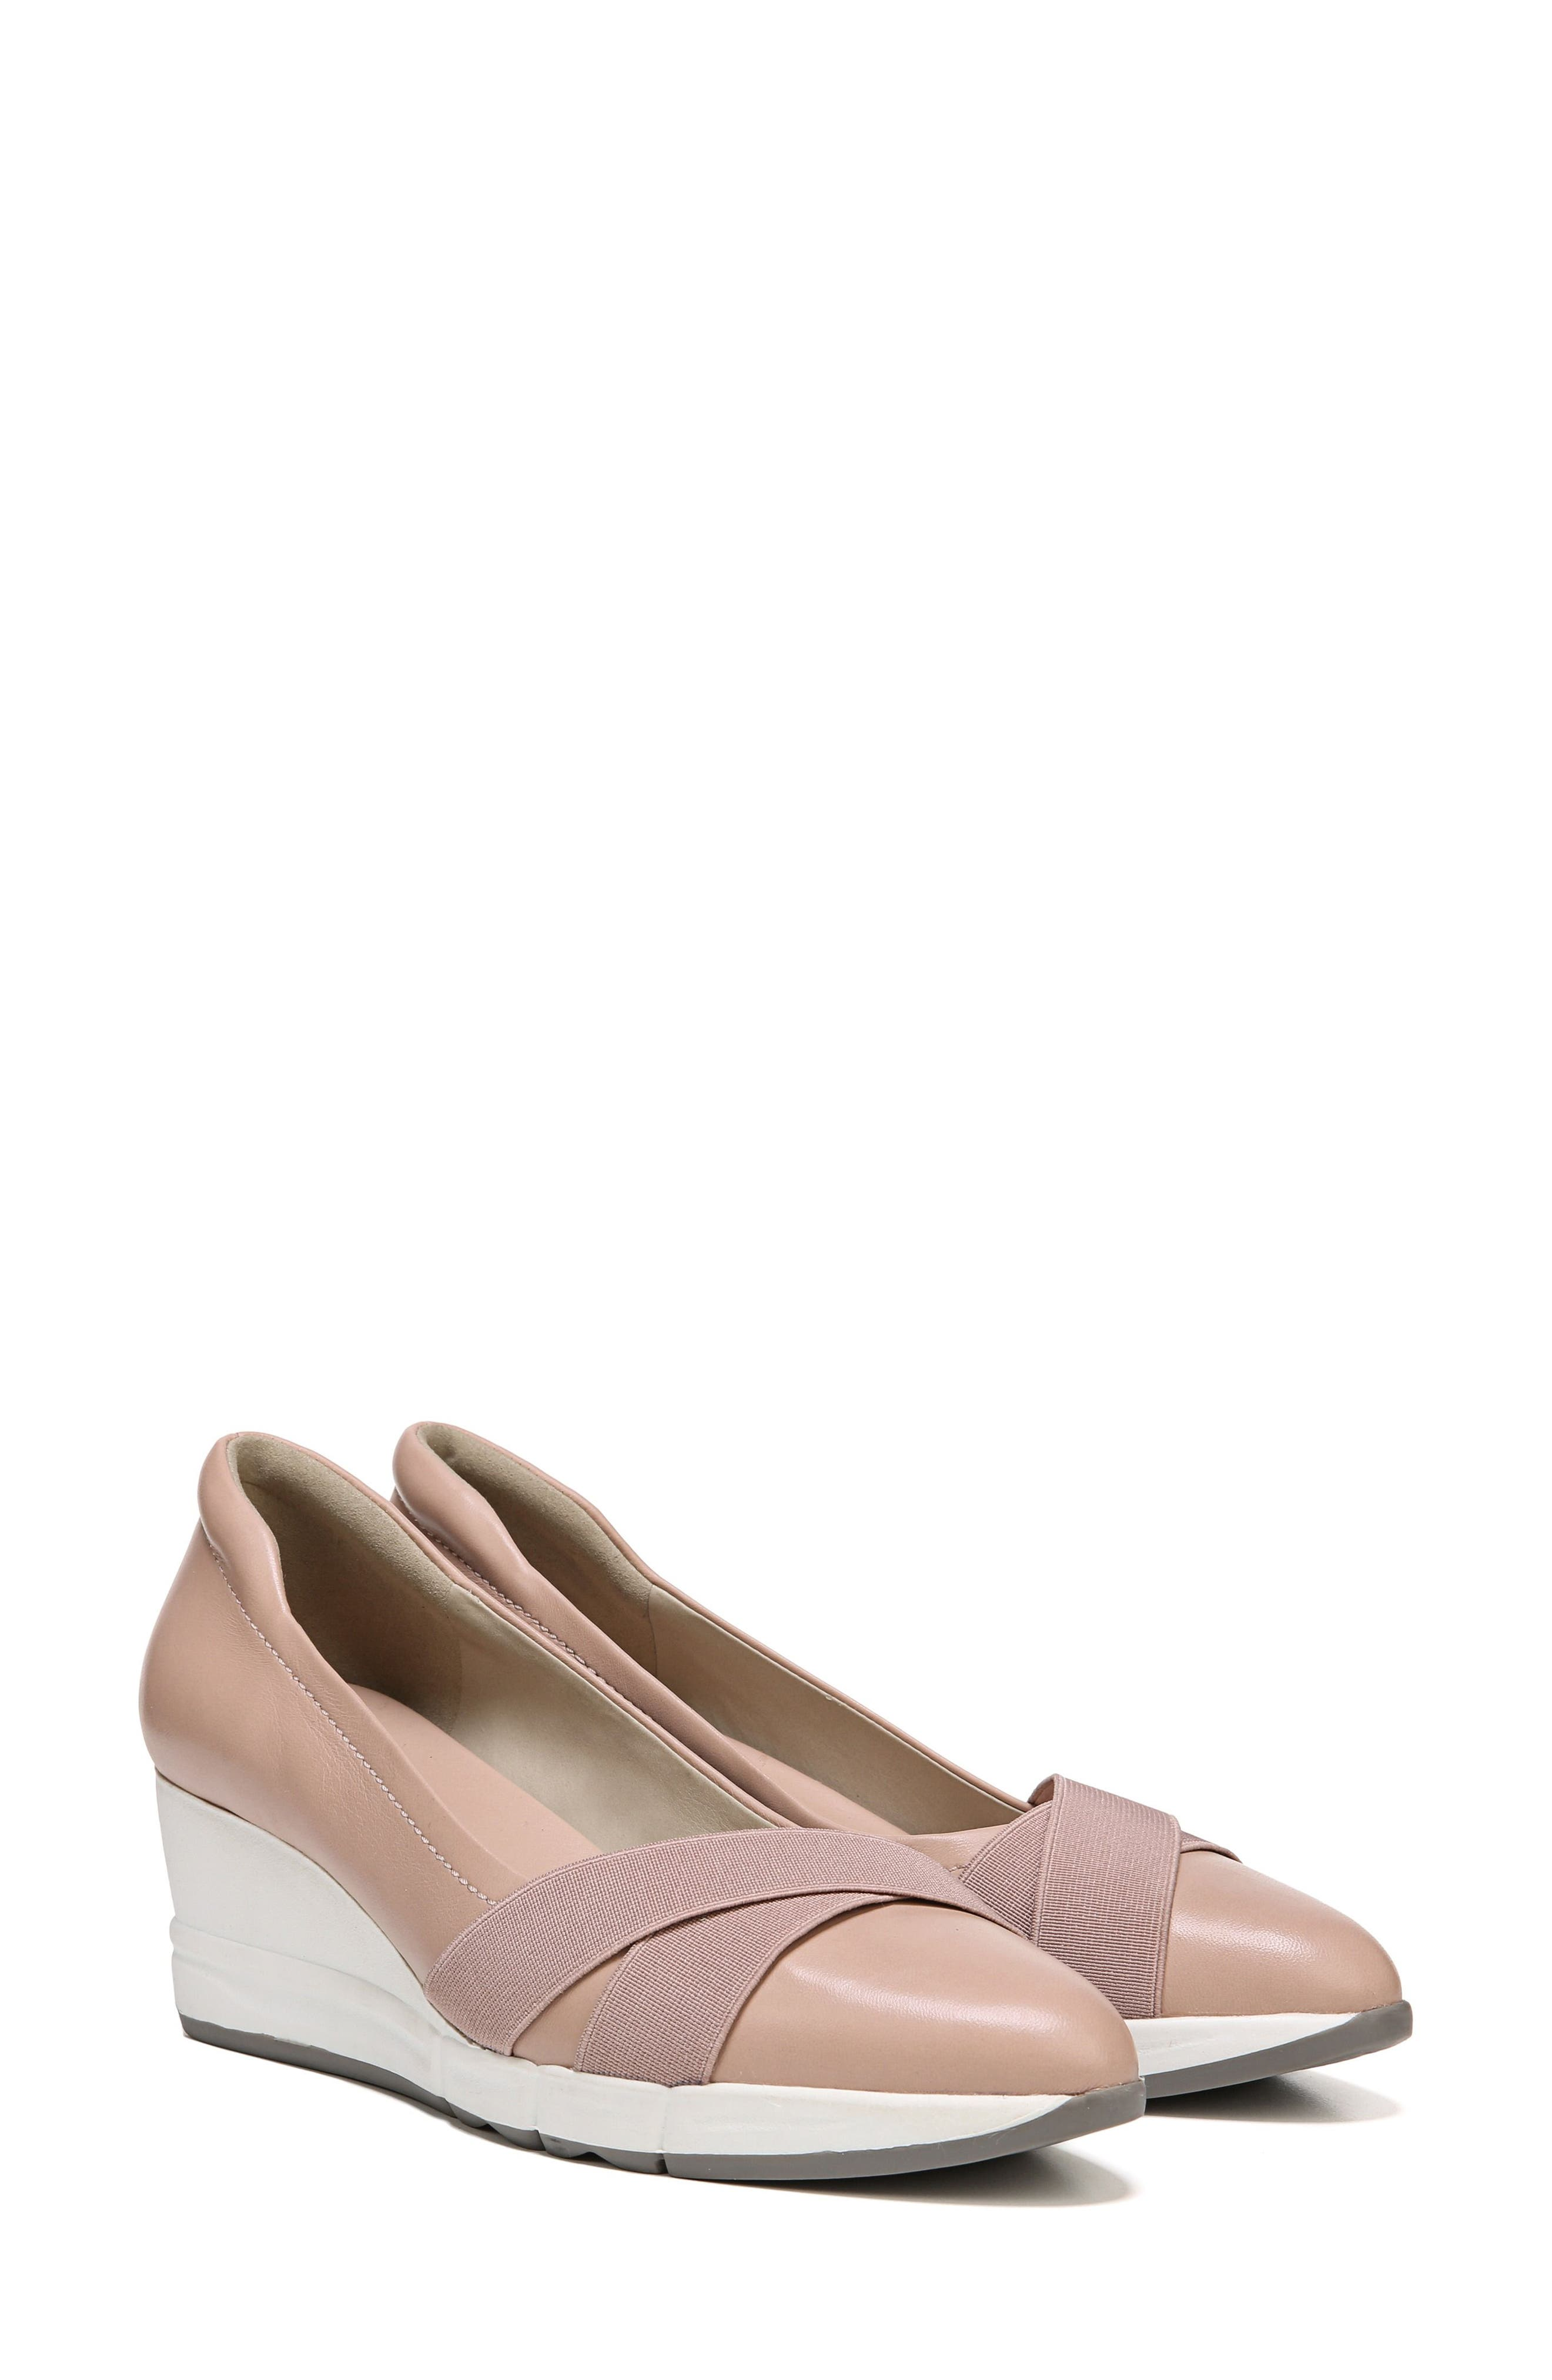 Harlyn Wedge Pump,                             Alternate thumbnail 9, color,                             Mauve Leather